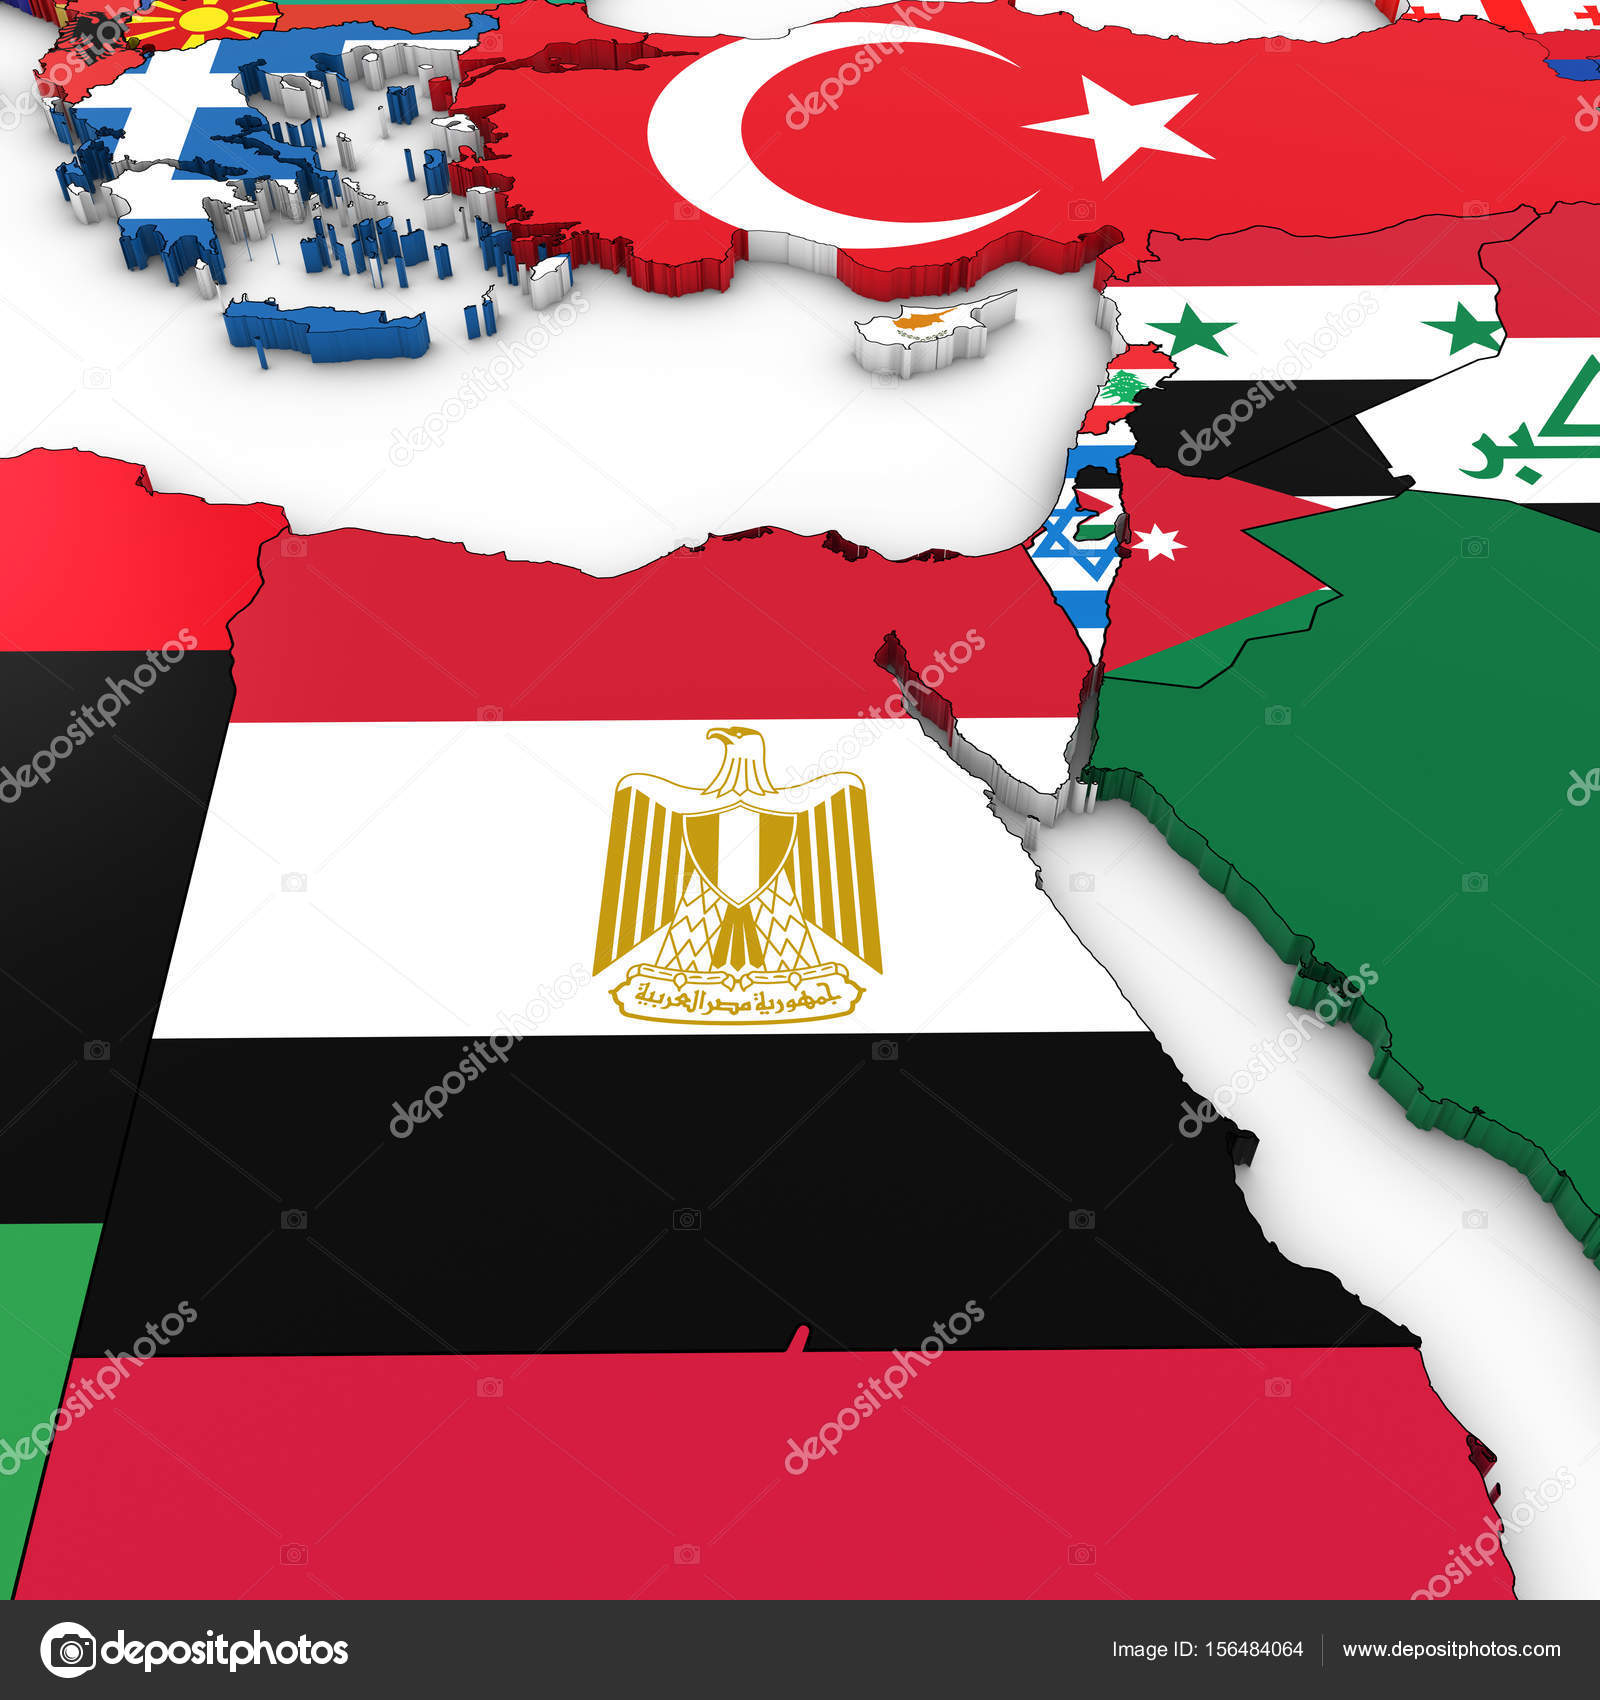 3D Map of North Africa and the Middle East with National Flags o